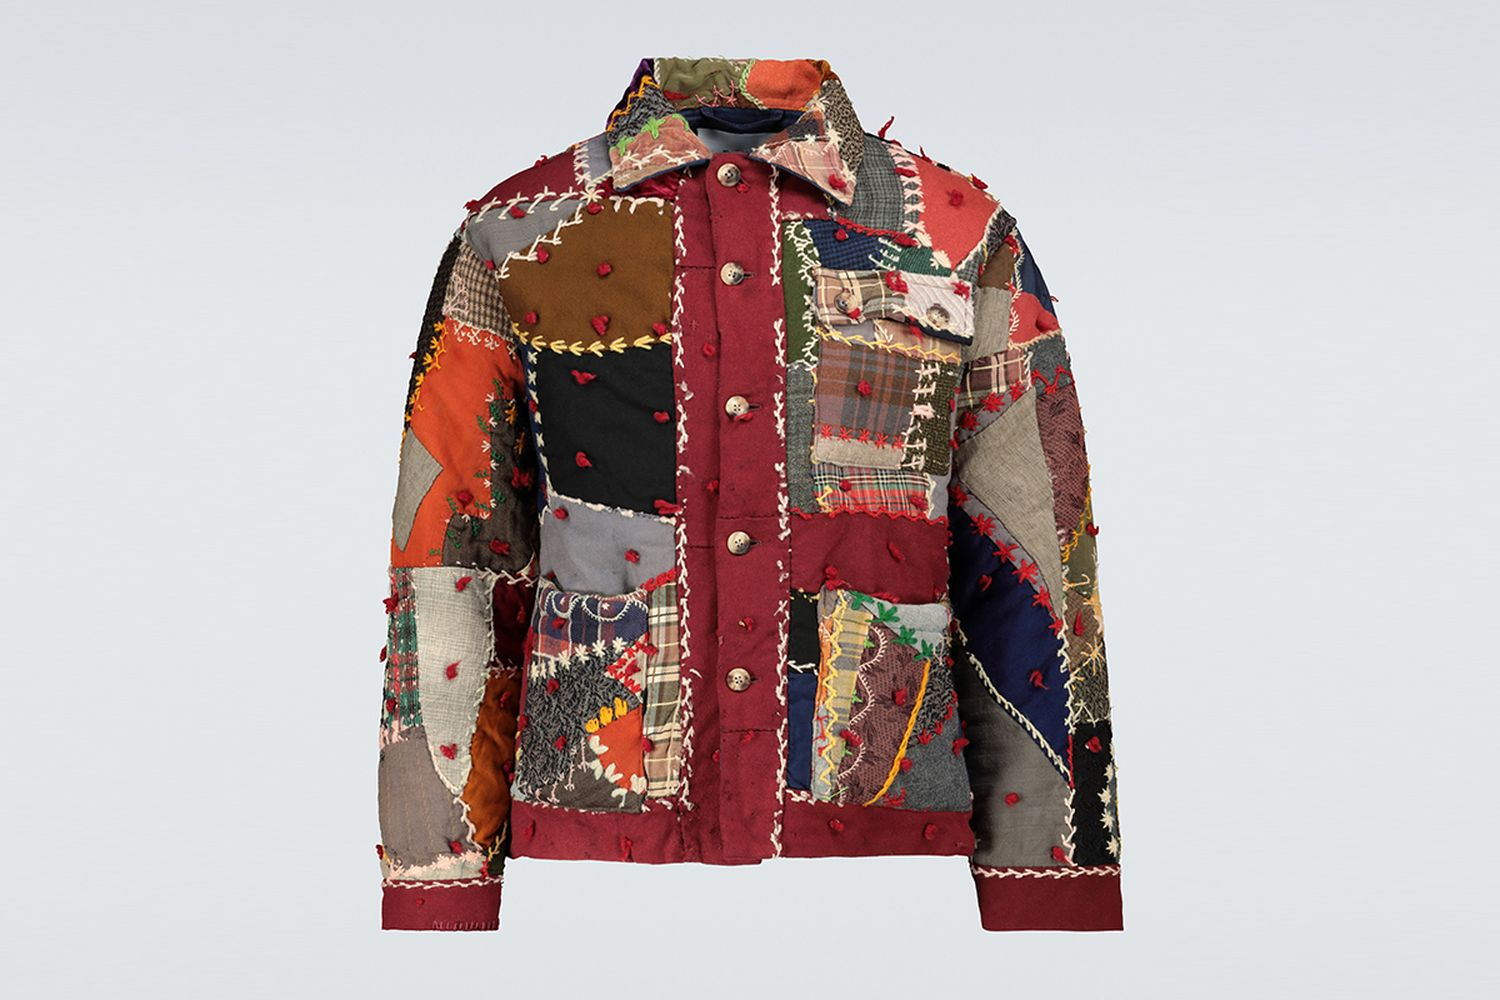 One of a Kind Crazy-Quilt Jacket